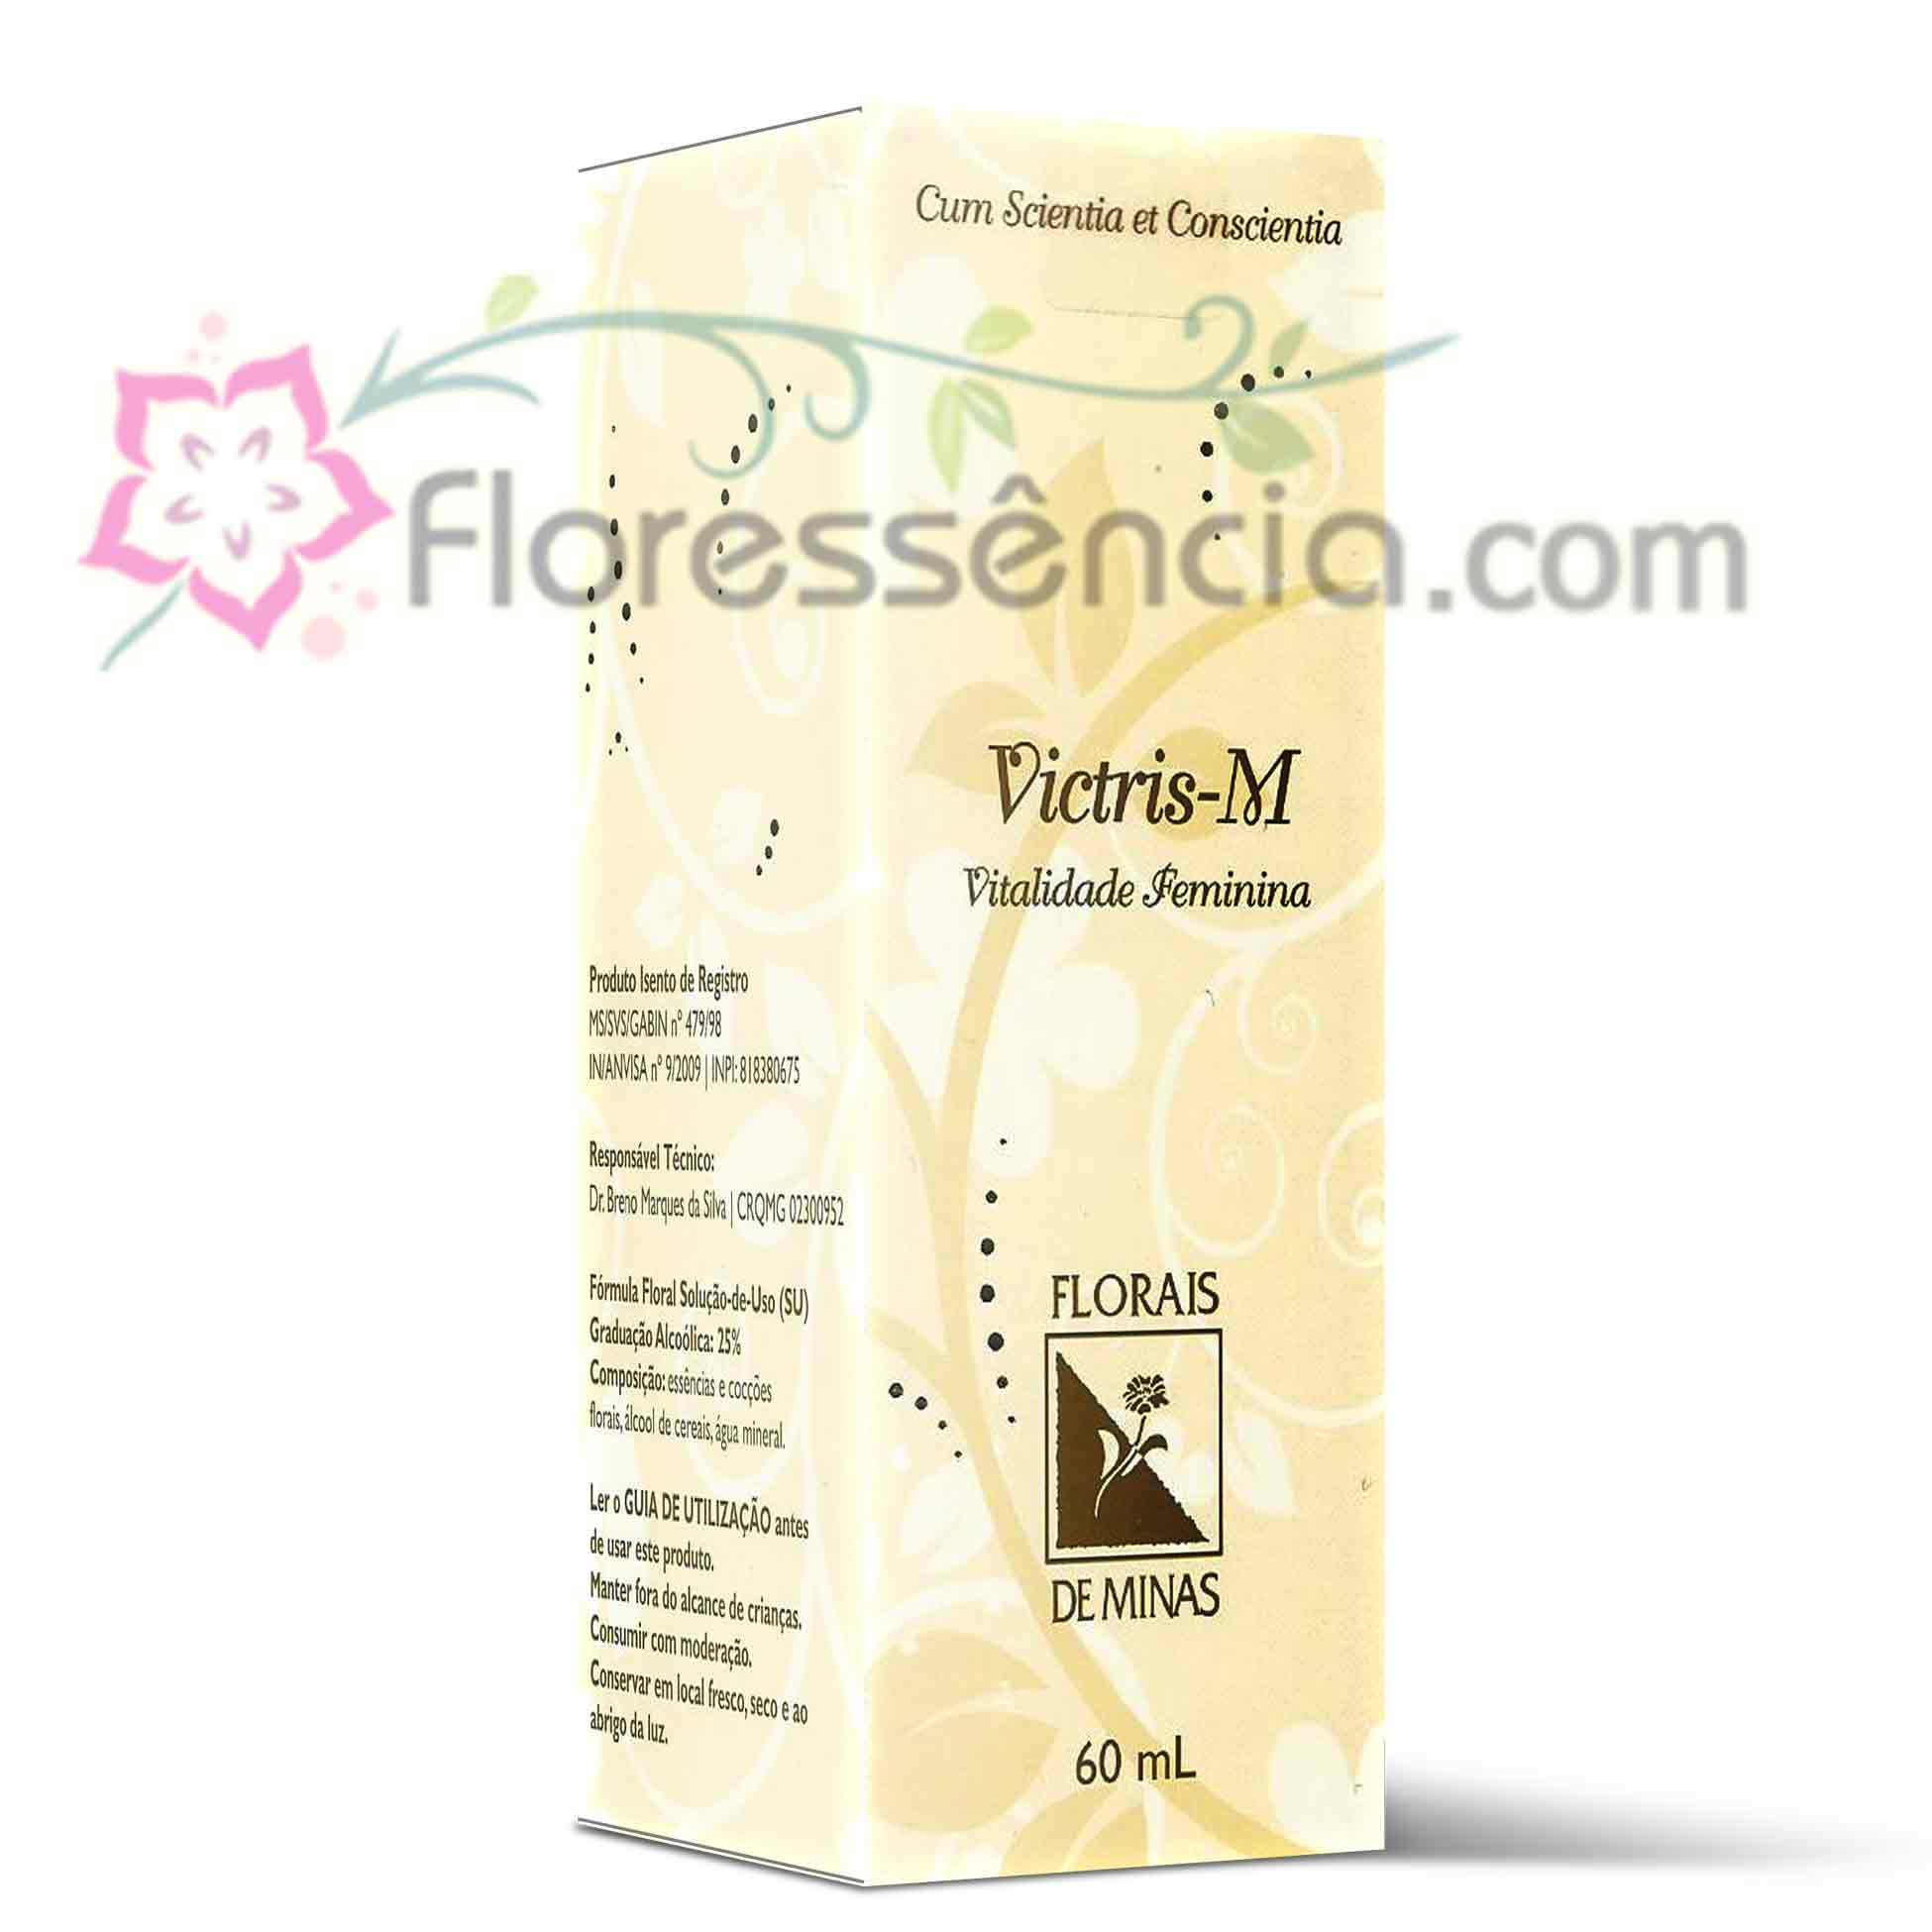 Victris-M - 60 ml  - Floressência